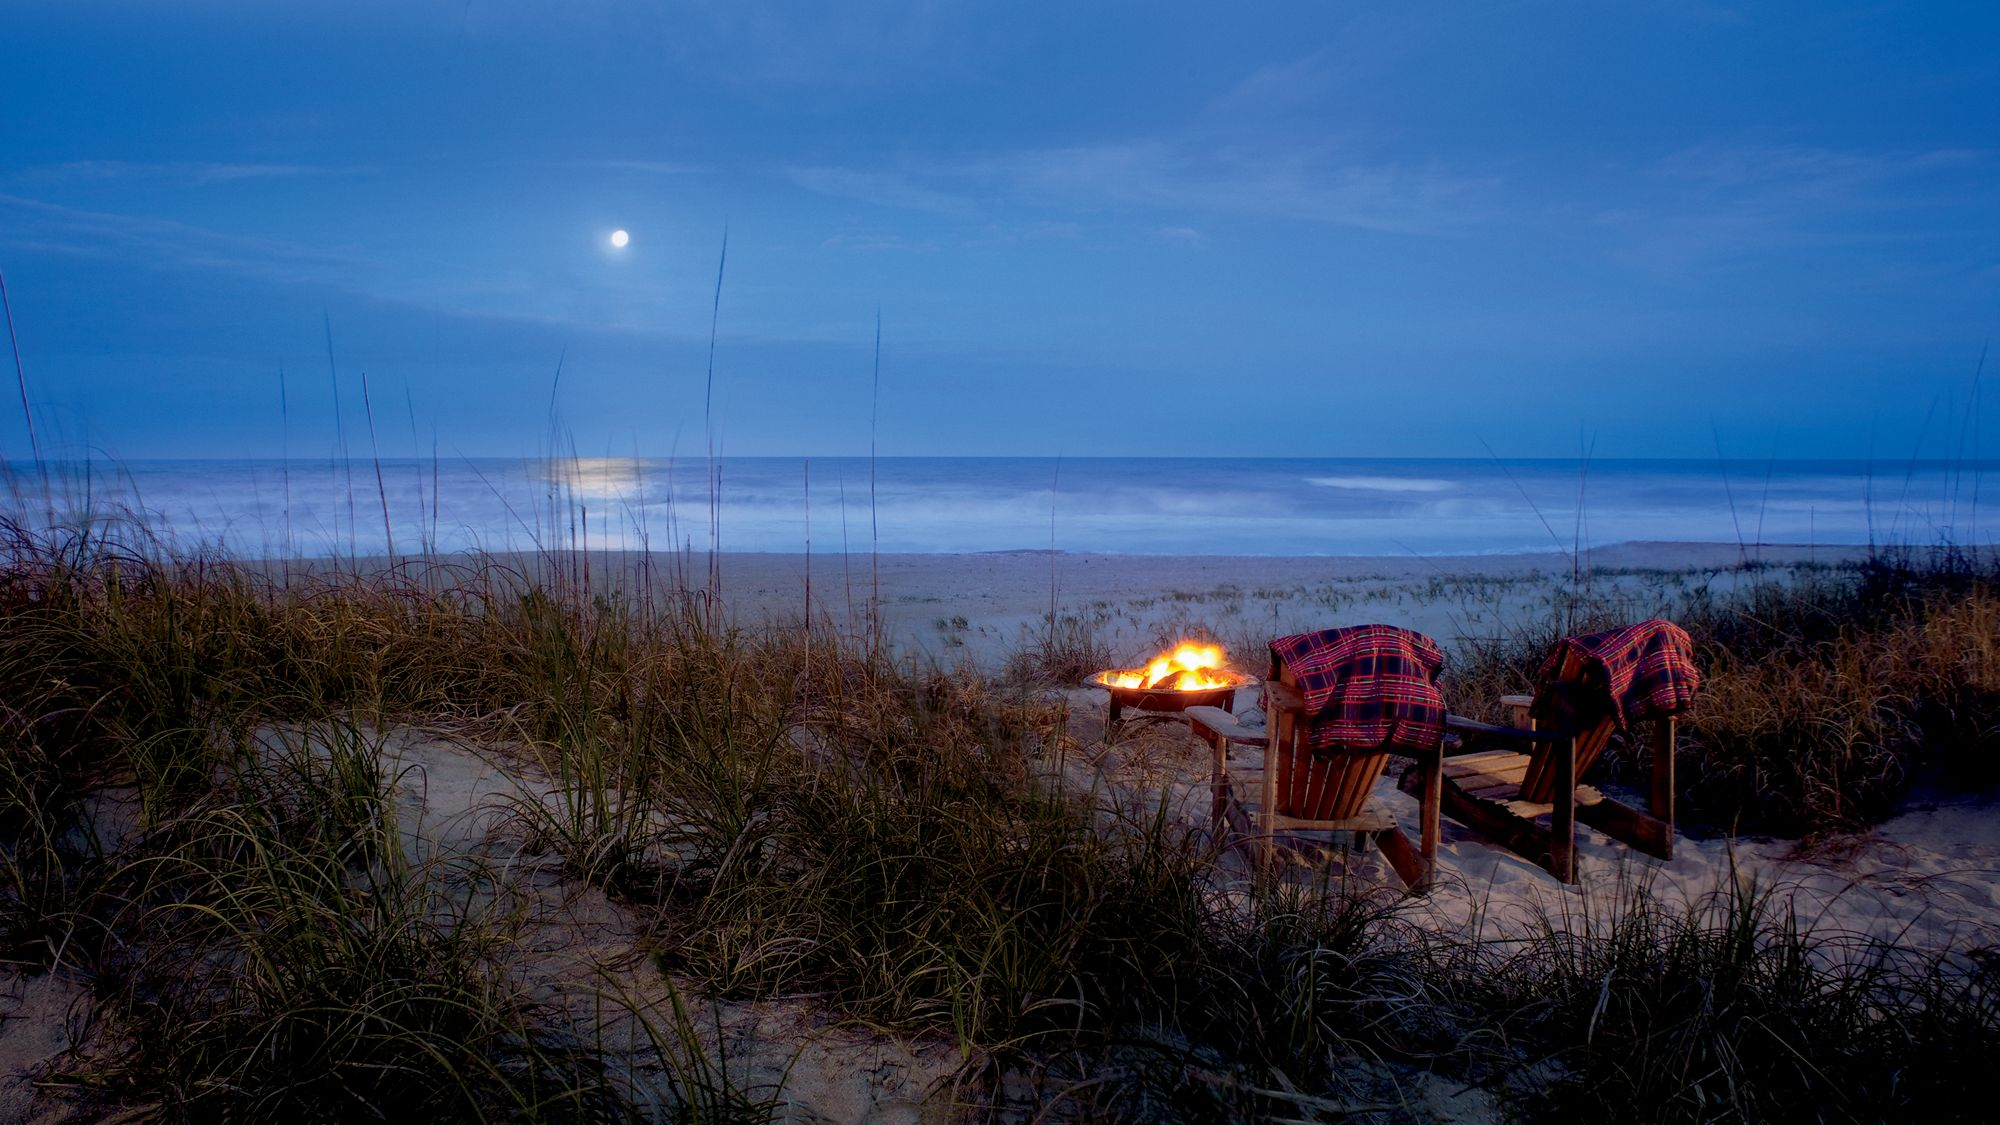 Two Adirondack chairs sit in front of a fire pit on the beach with a full moon hovering above the ocean